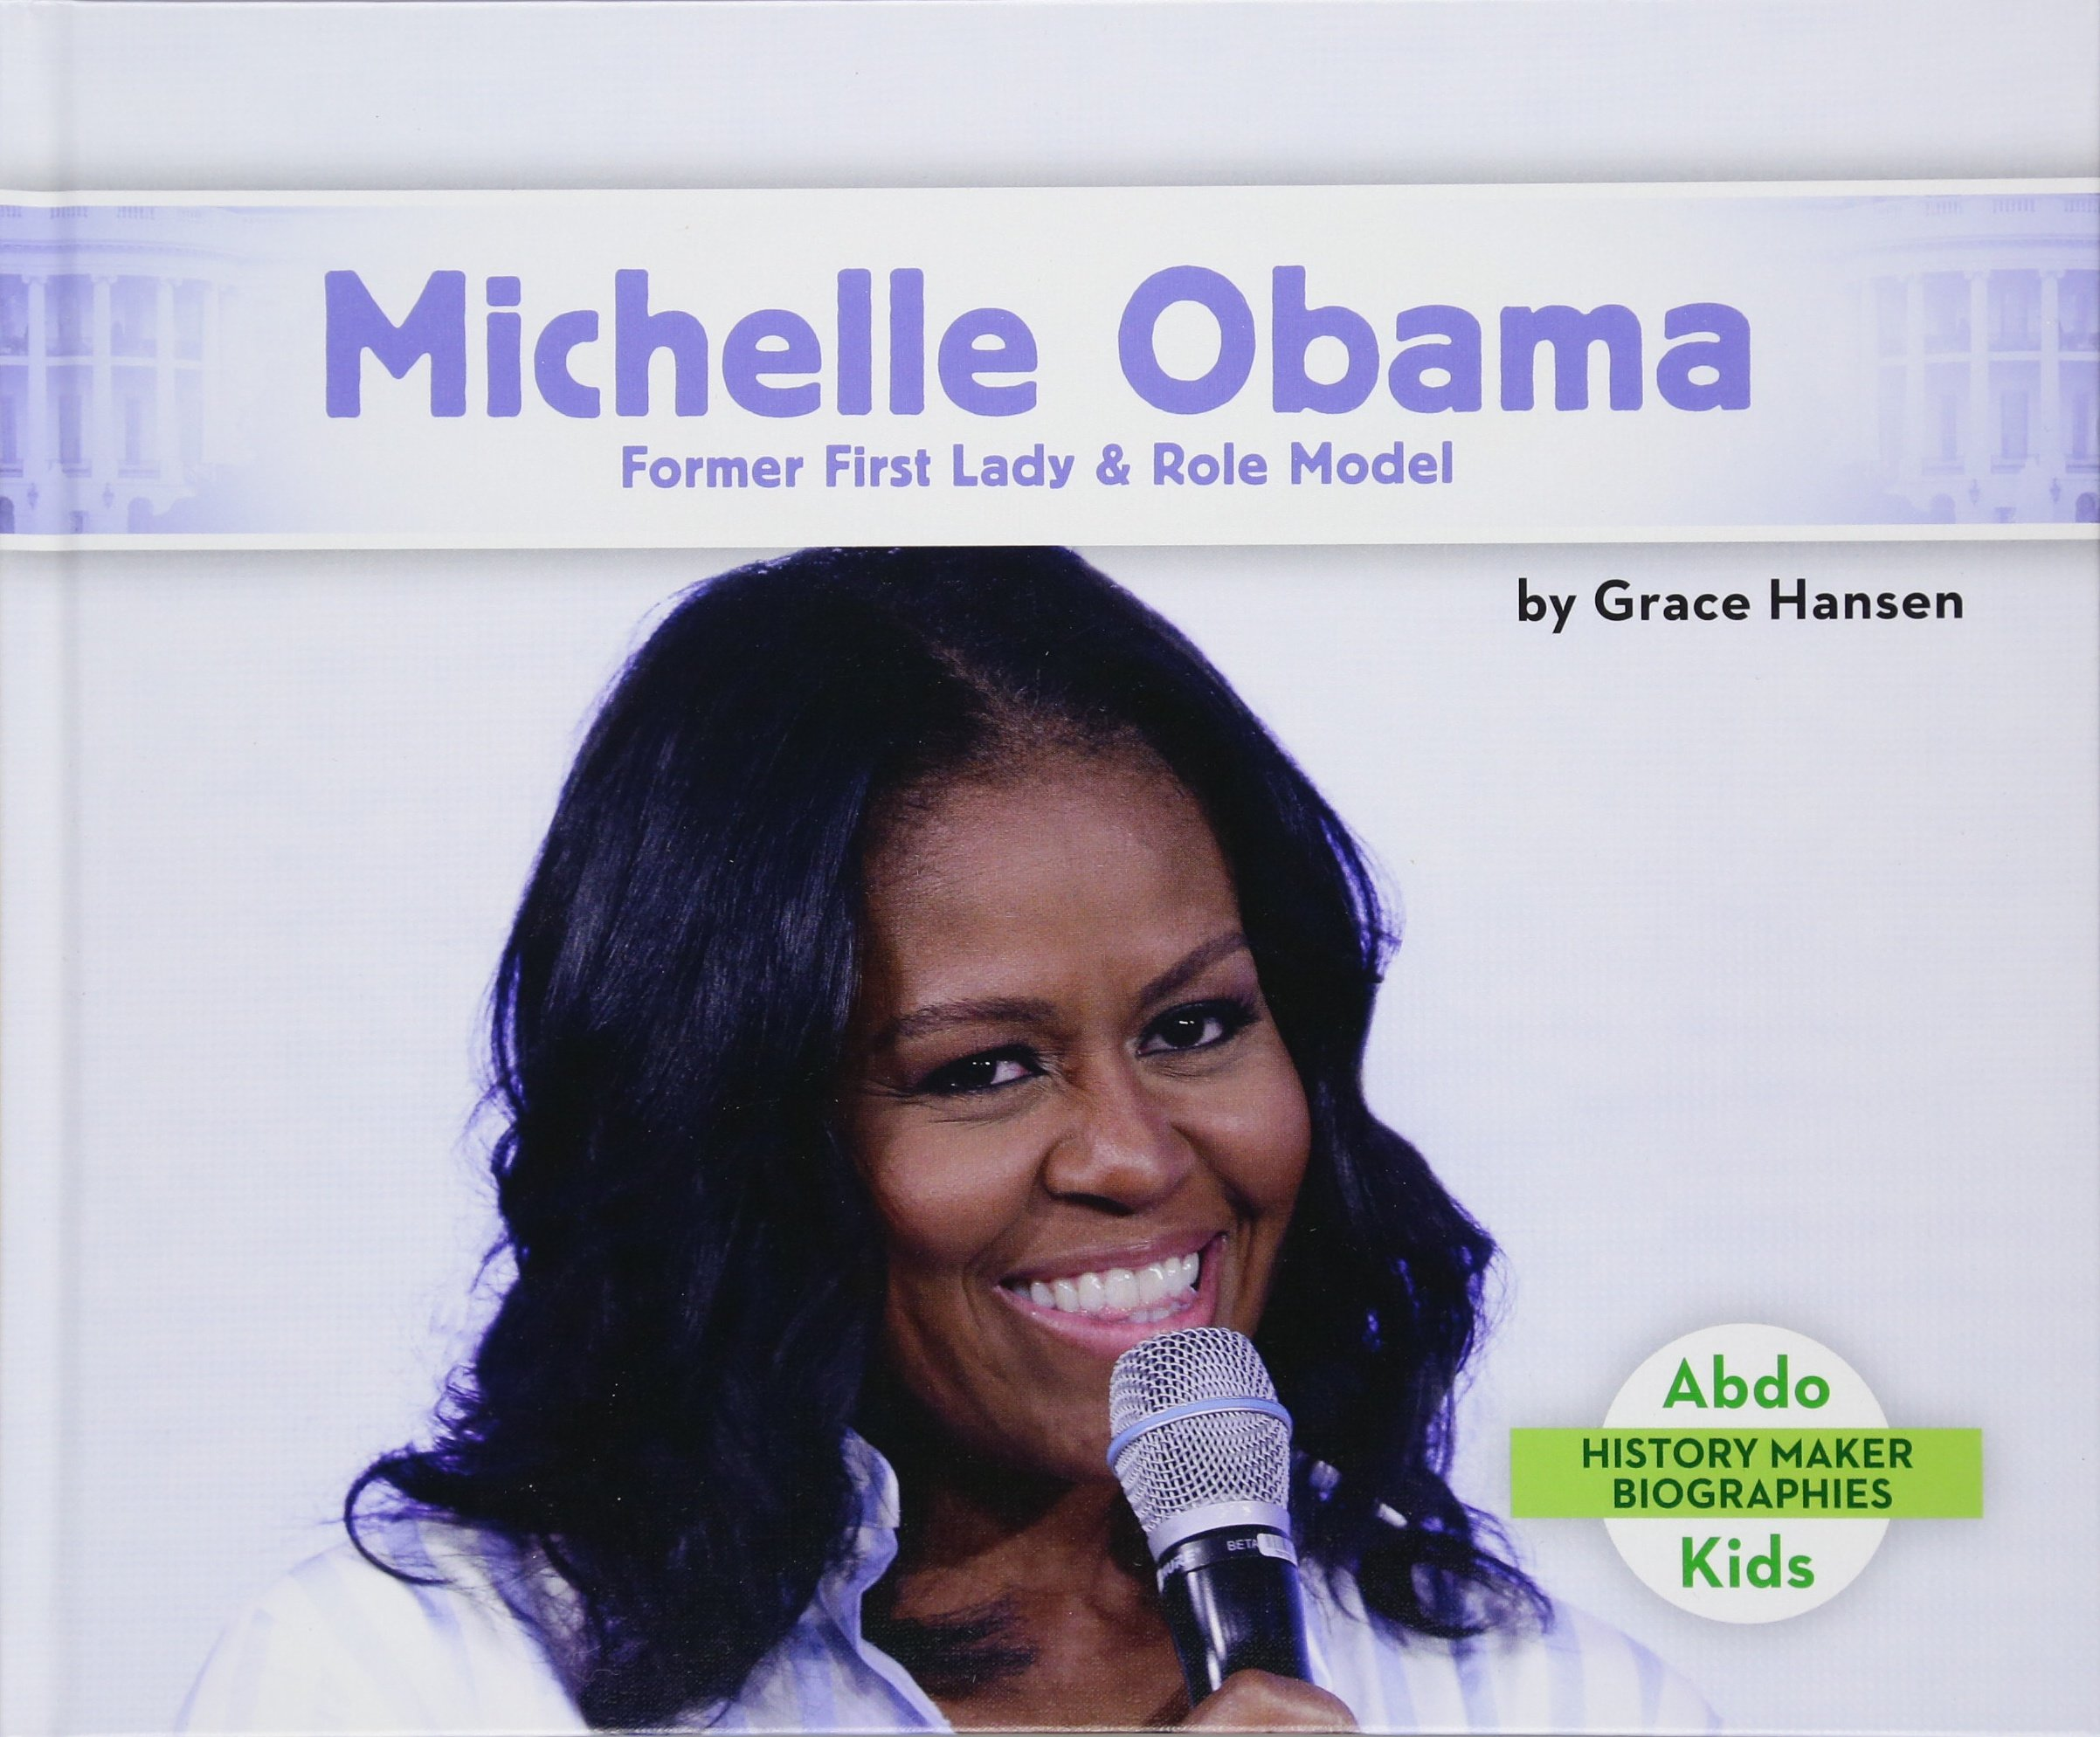 history of michelle obama